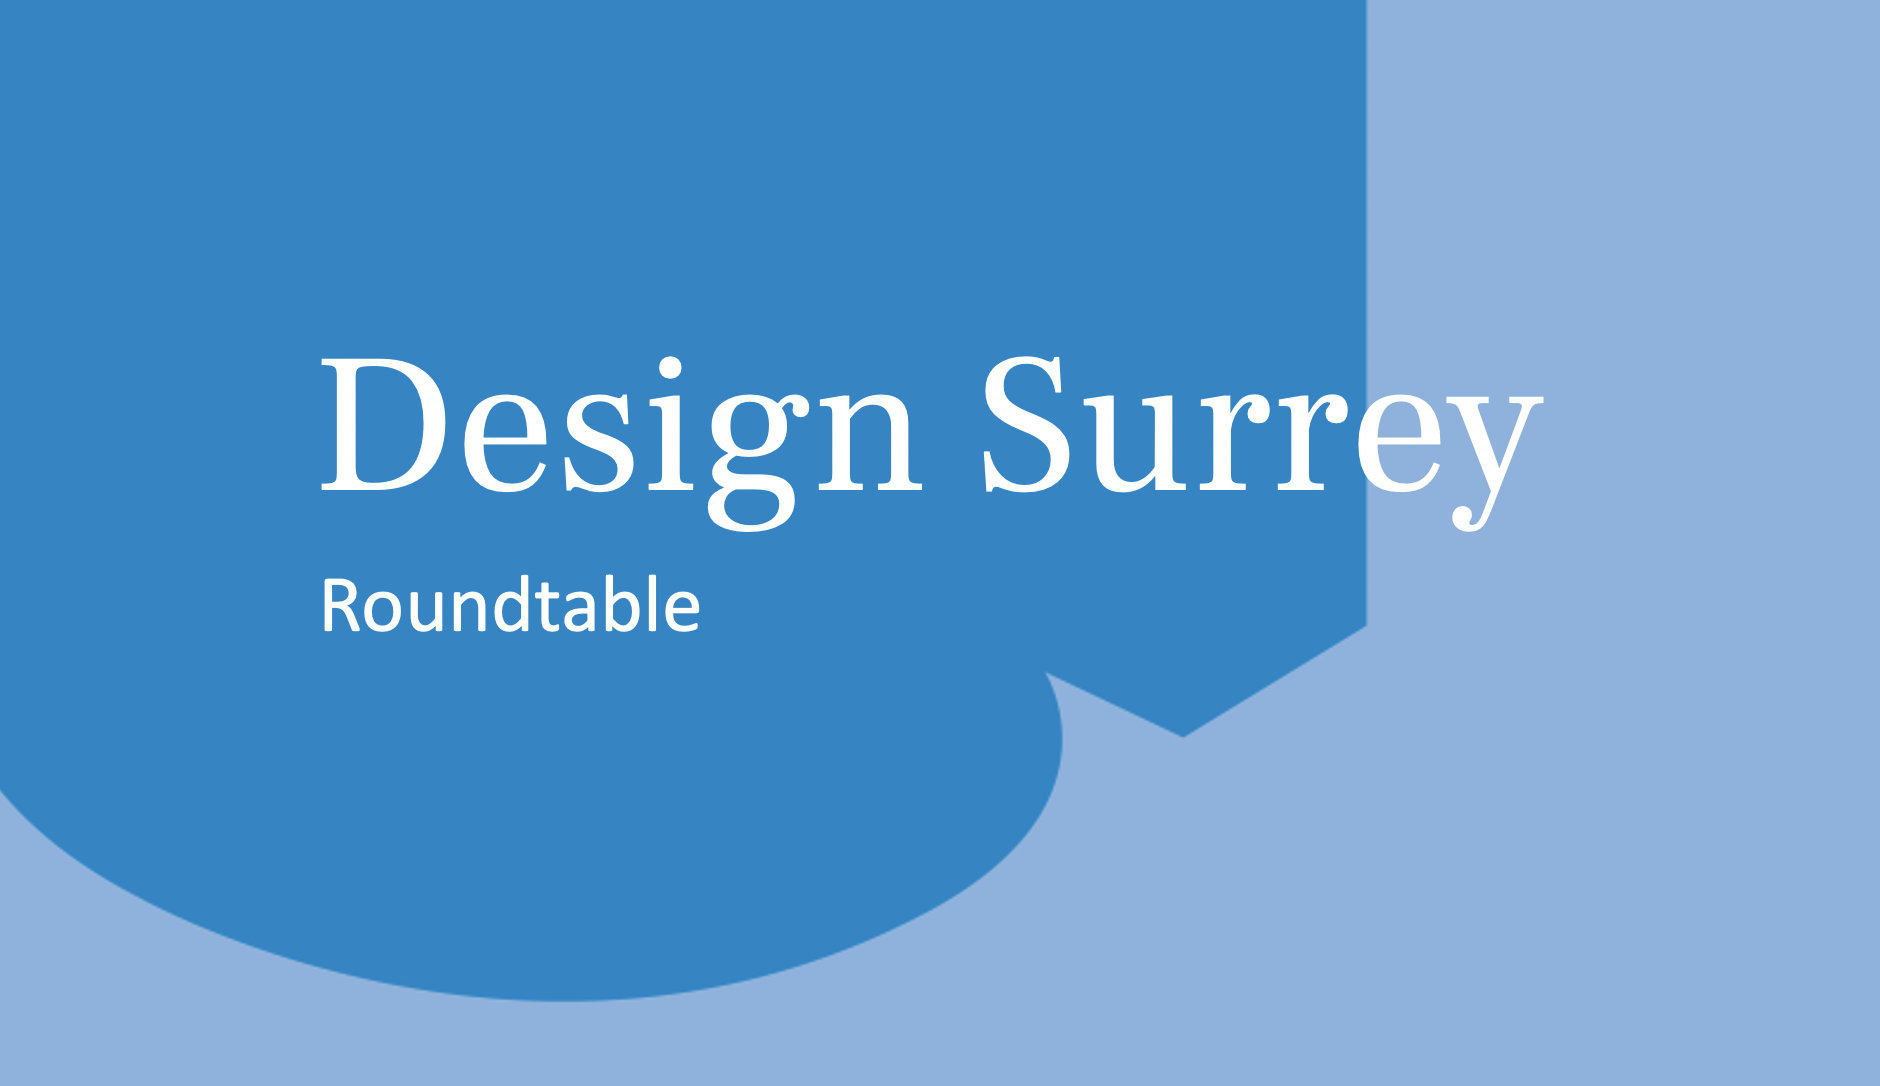 Design South East — Design Surrey – Roundtable: Policy briefings: MHCLG response to the White Paper consultation